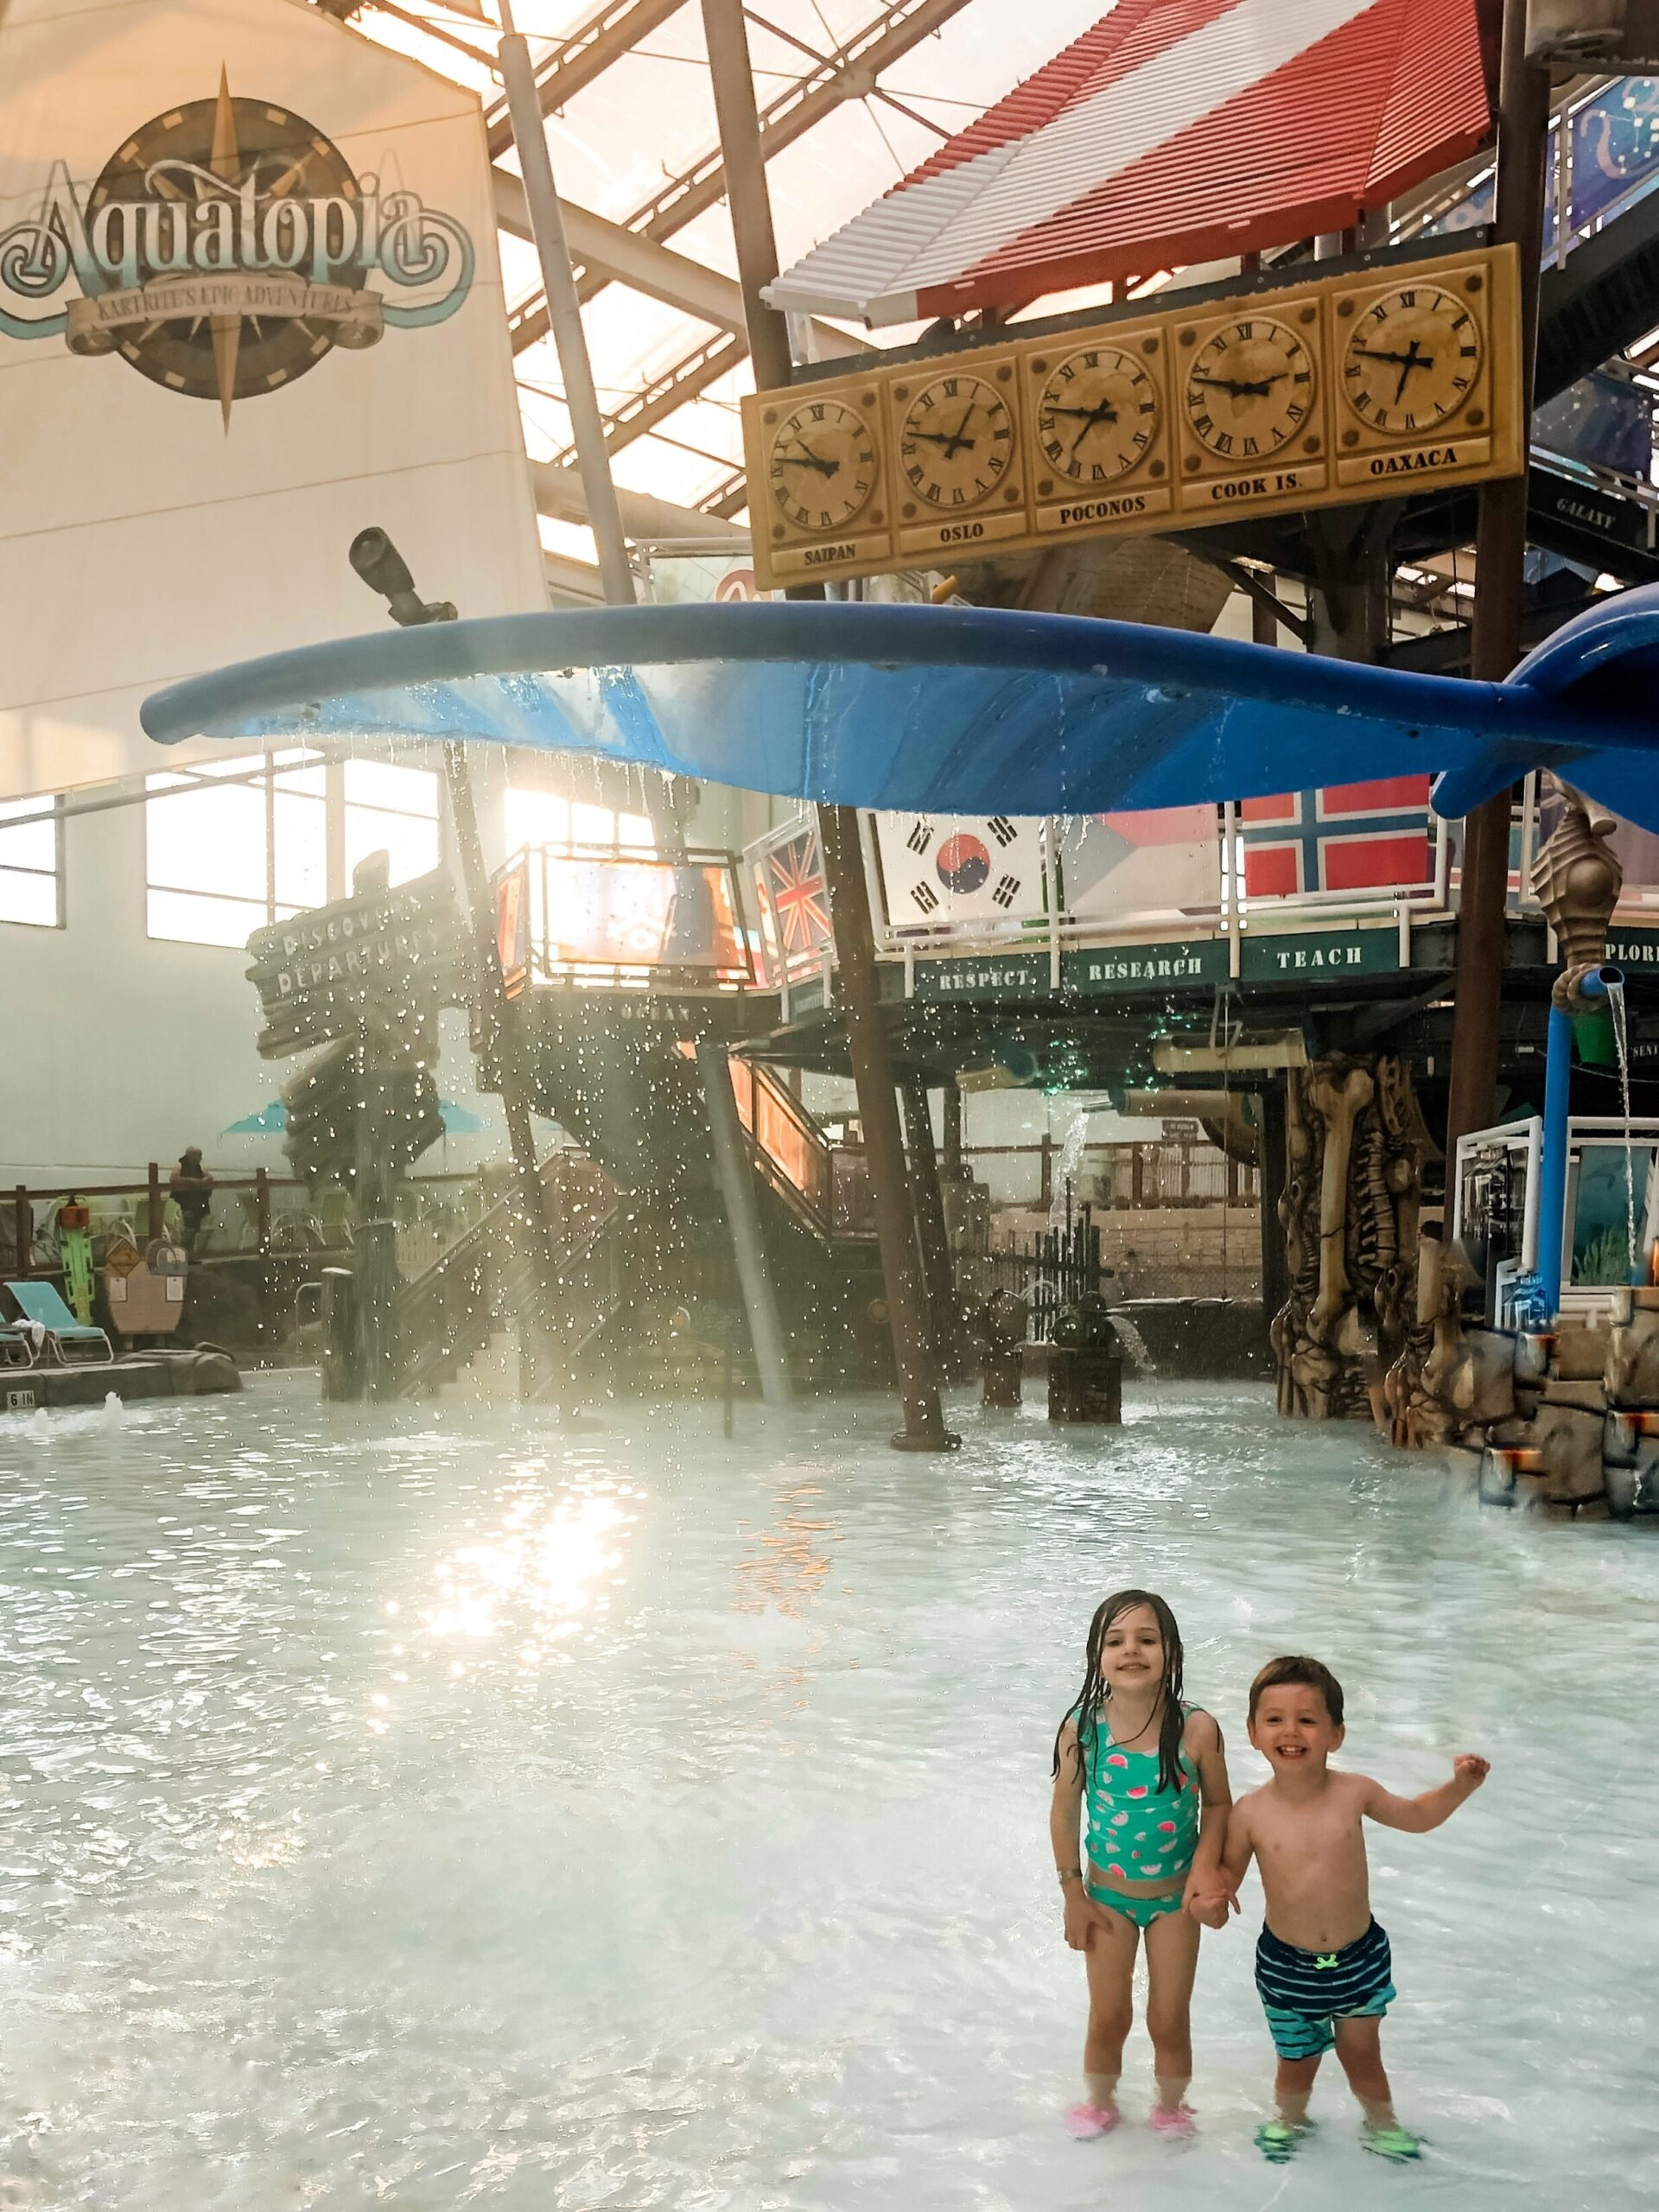 Camelback resort indoor waterpark made the perfect family-friendly destination for our young family. Toddlers and Preschoolers enjoyed it just as much as the adults!